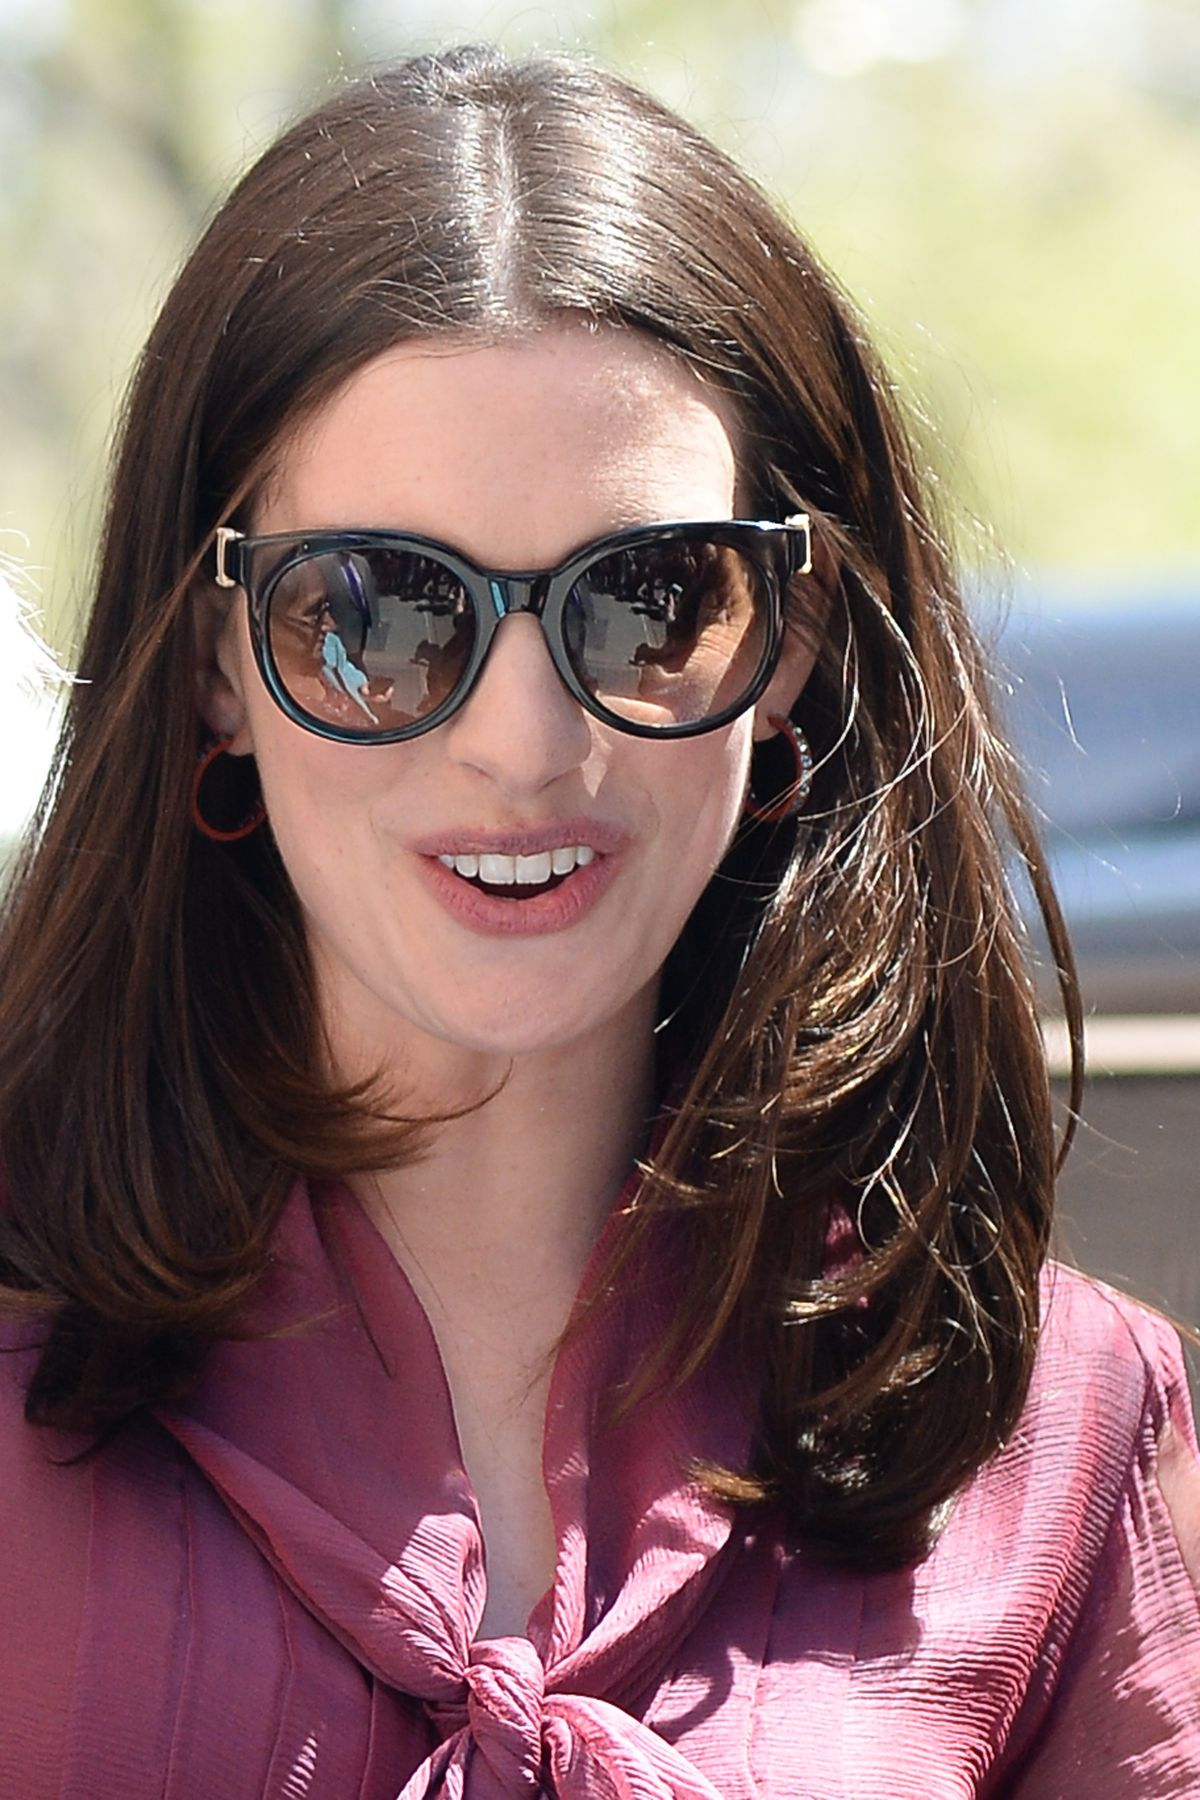 ANNE HATHAWAY at The View in New York 04/18/2017 - HawtCelebs Anne Hathaway